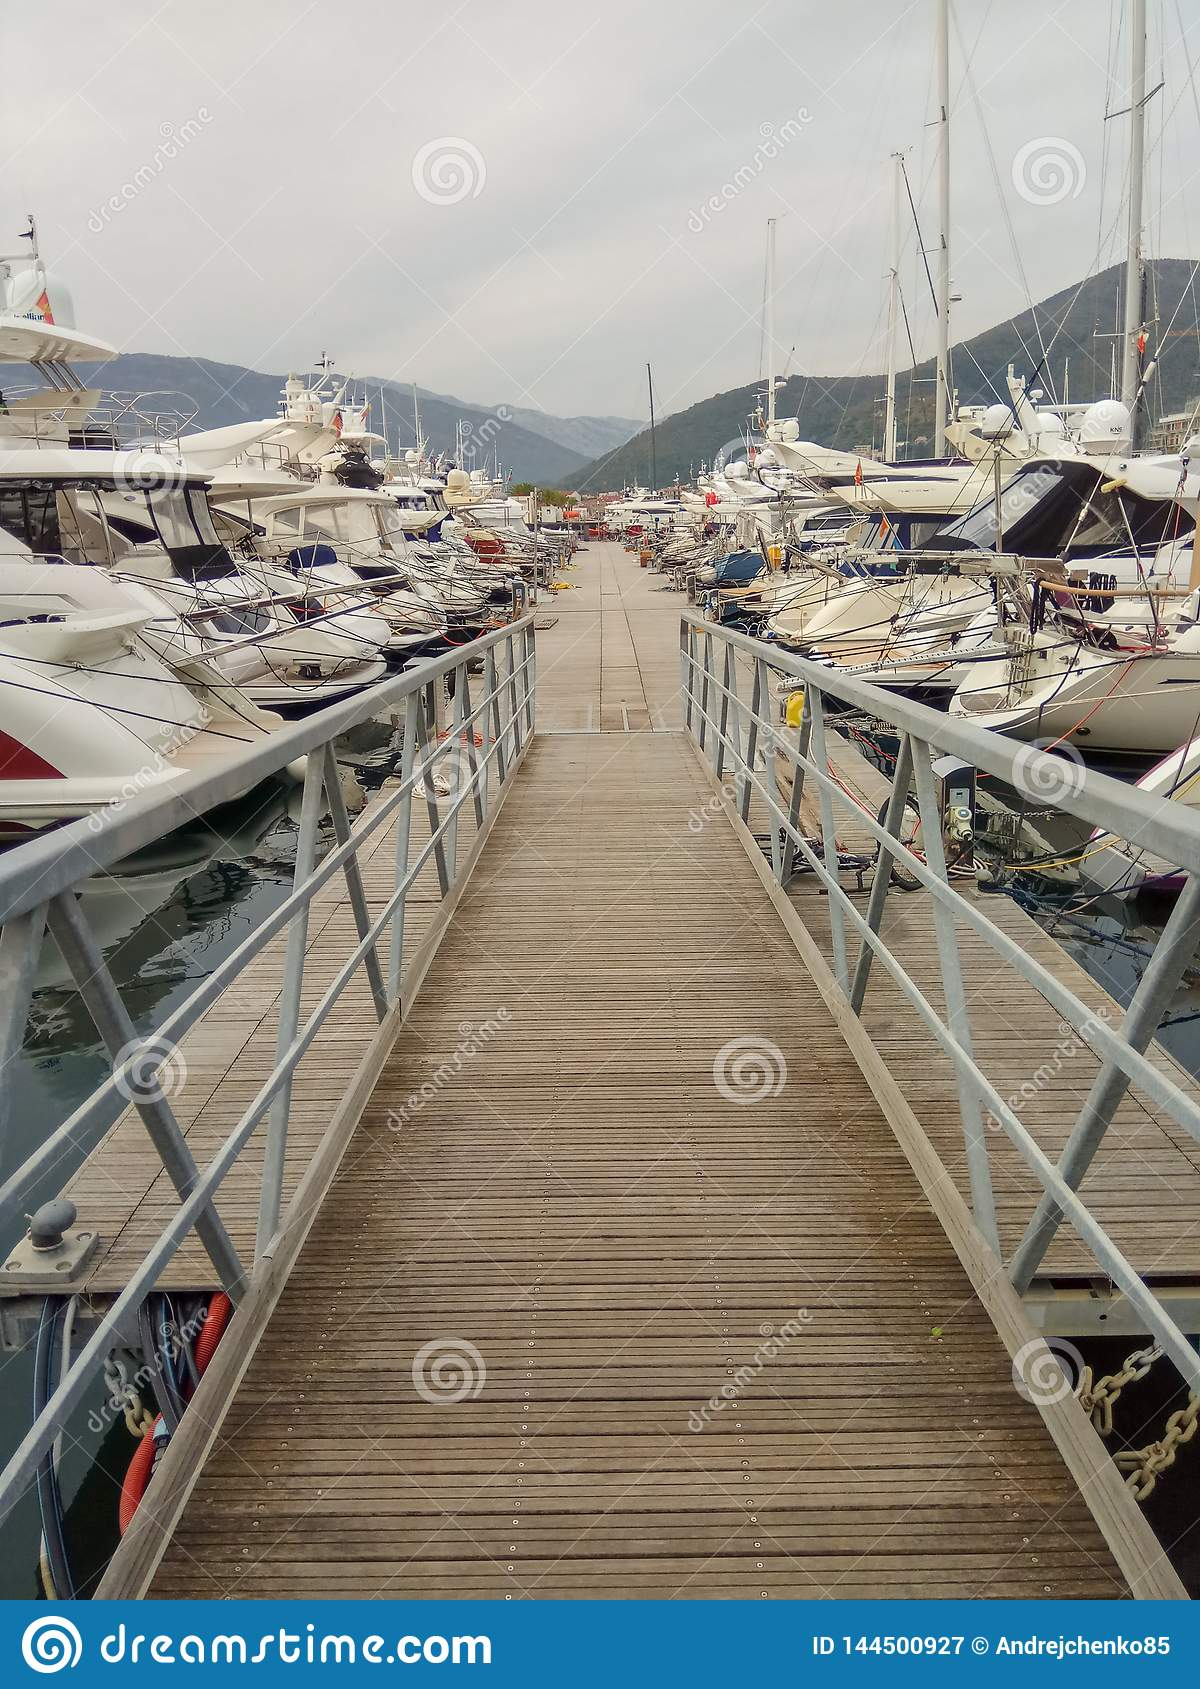 Many yachts in port Tivat, Montenegro, cloudy